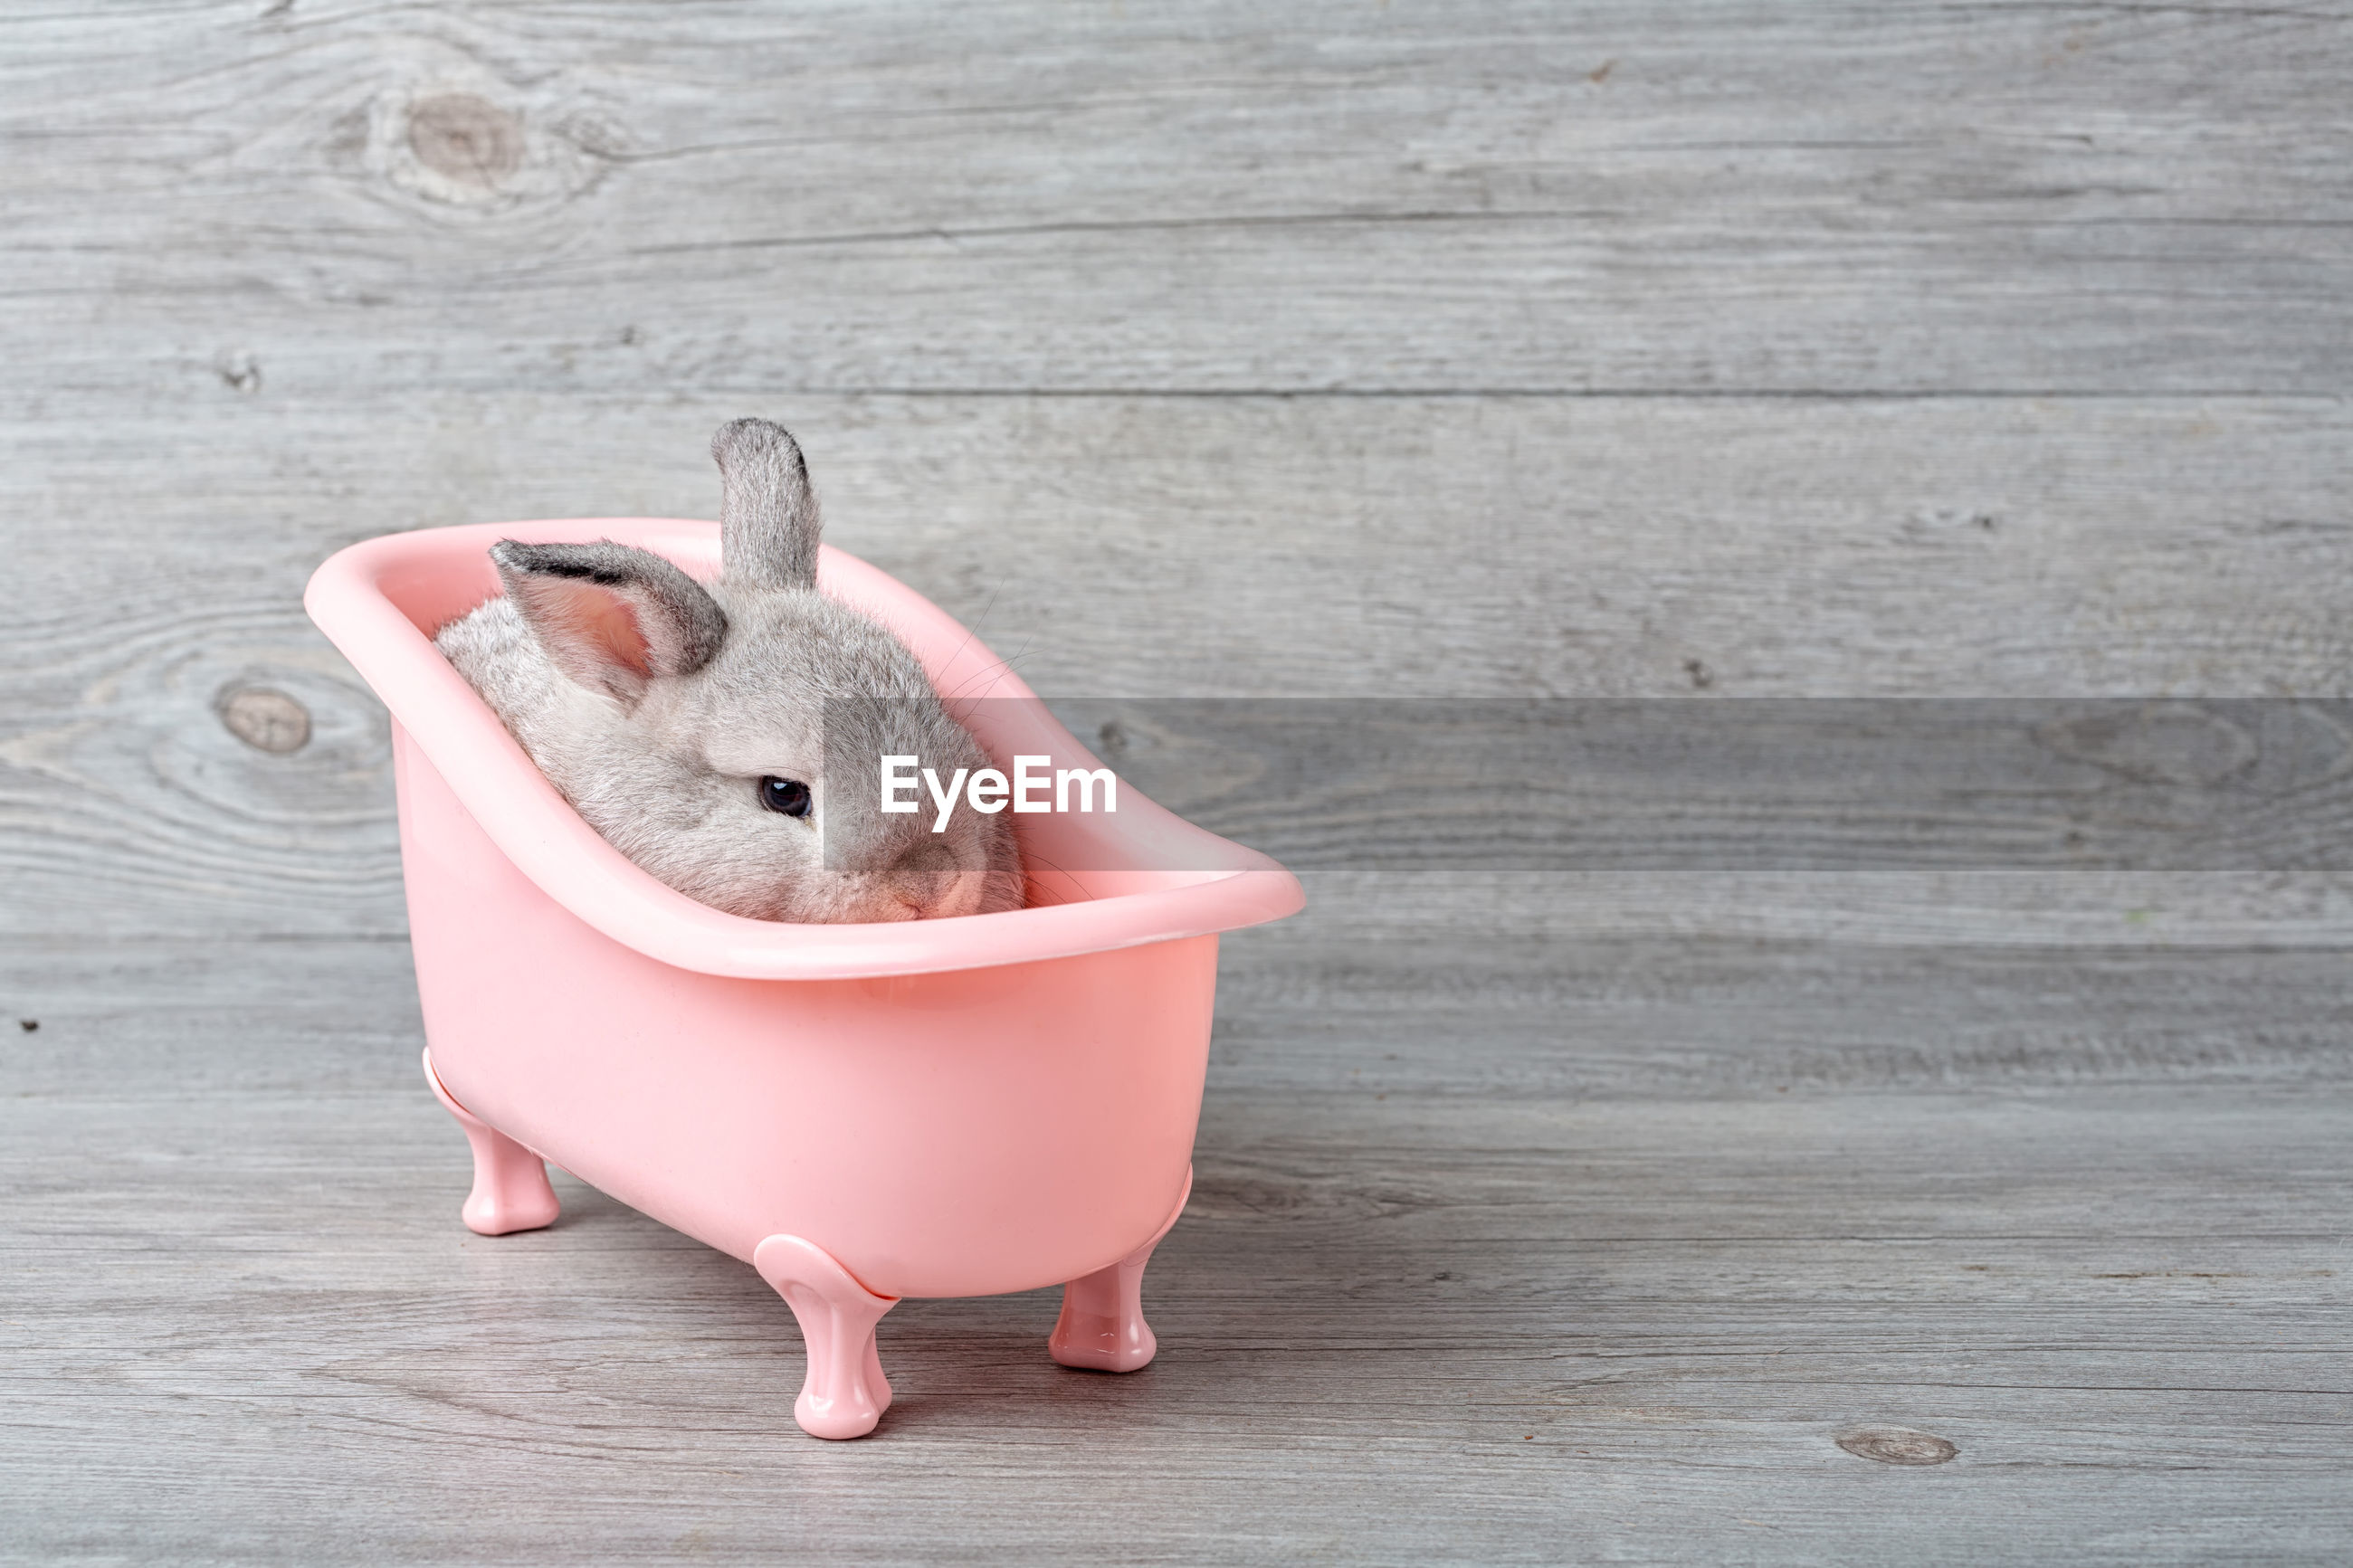 Rabbit in the bathtub placed on a wooden floor. happy easter fancy rabbit on a wooden background.